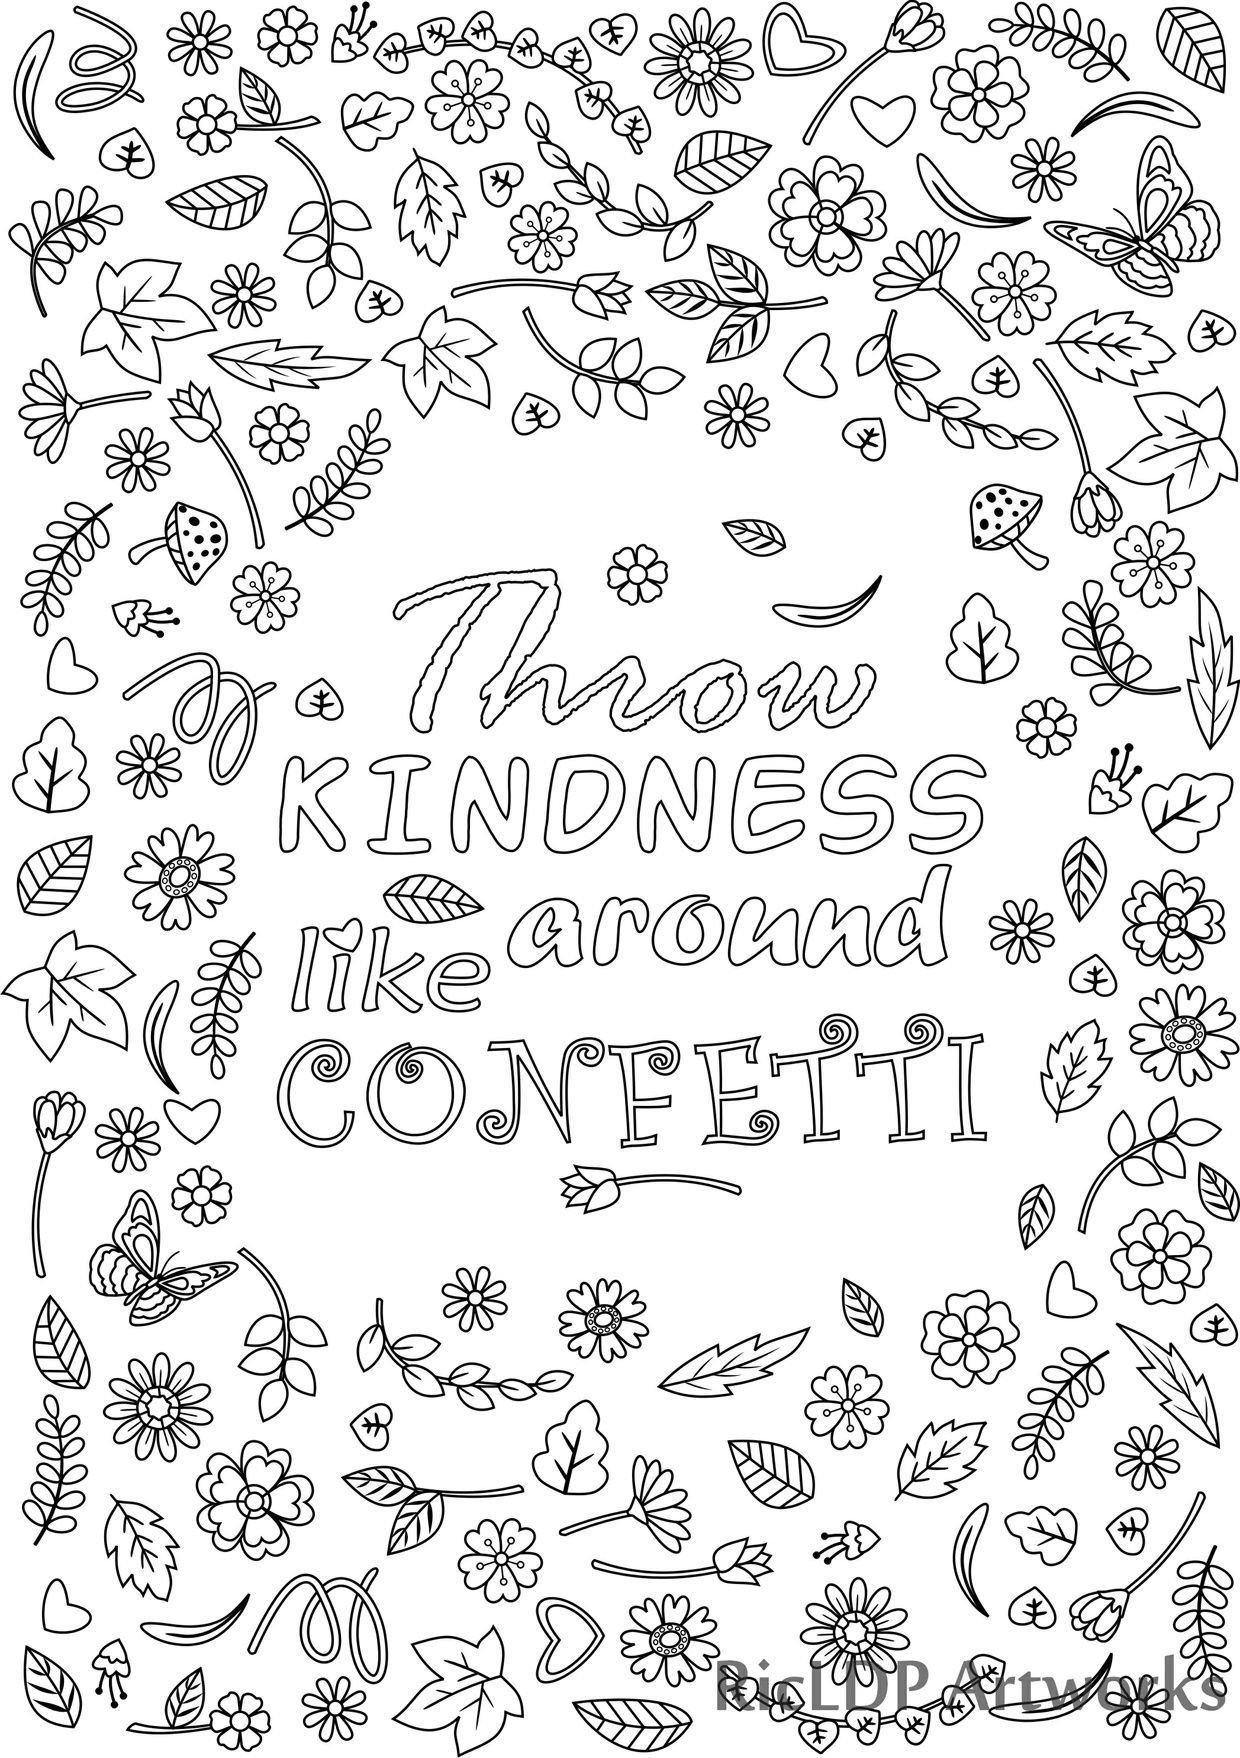 Free Coloring Pages Showing Kindness.  Throw kindness around like confetti Coloring Page for Adults throwkindness coloringpage Printable Kindness Around Like Confetti